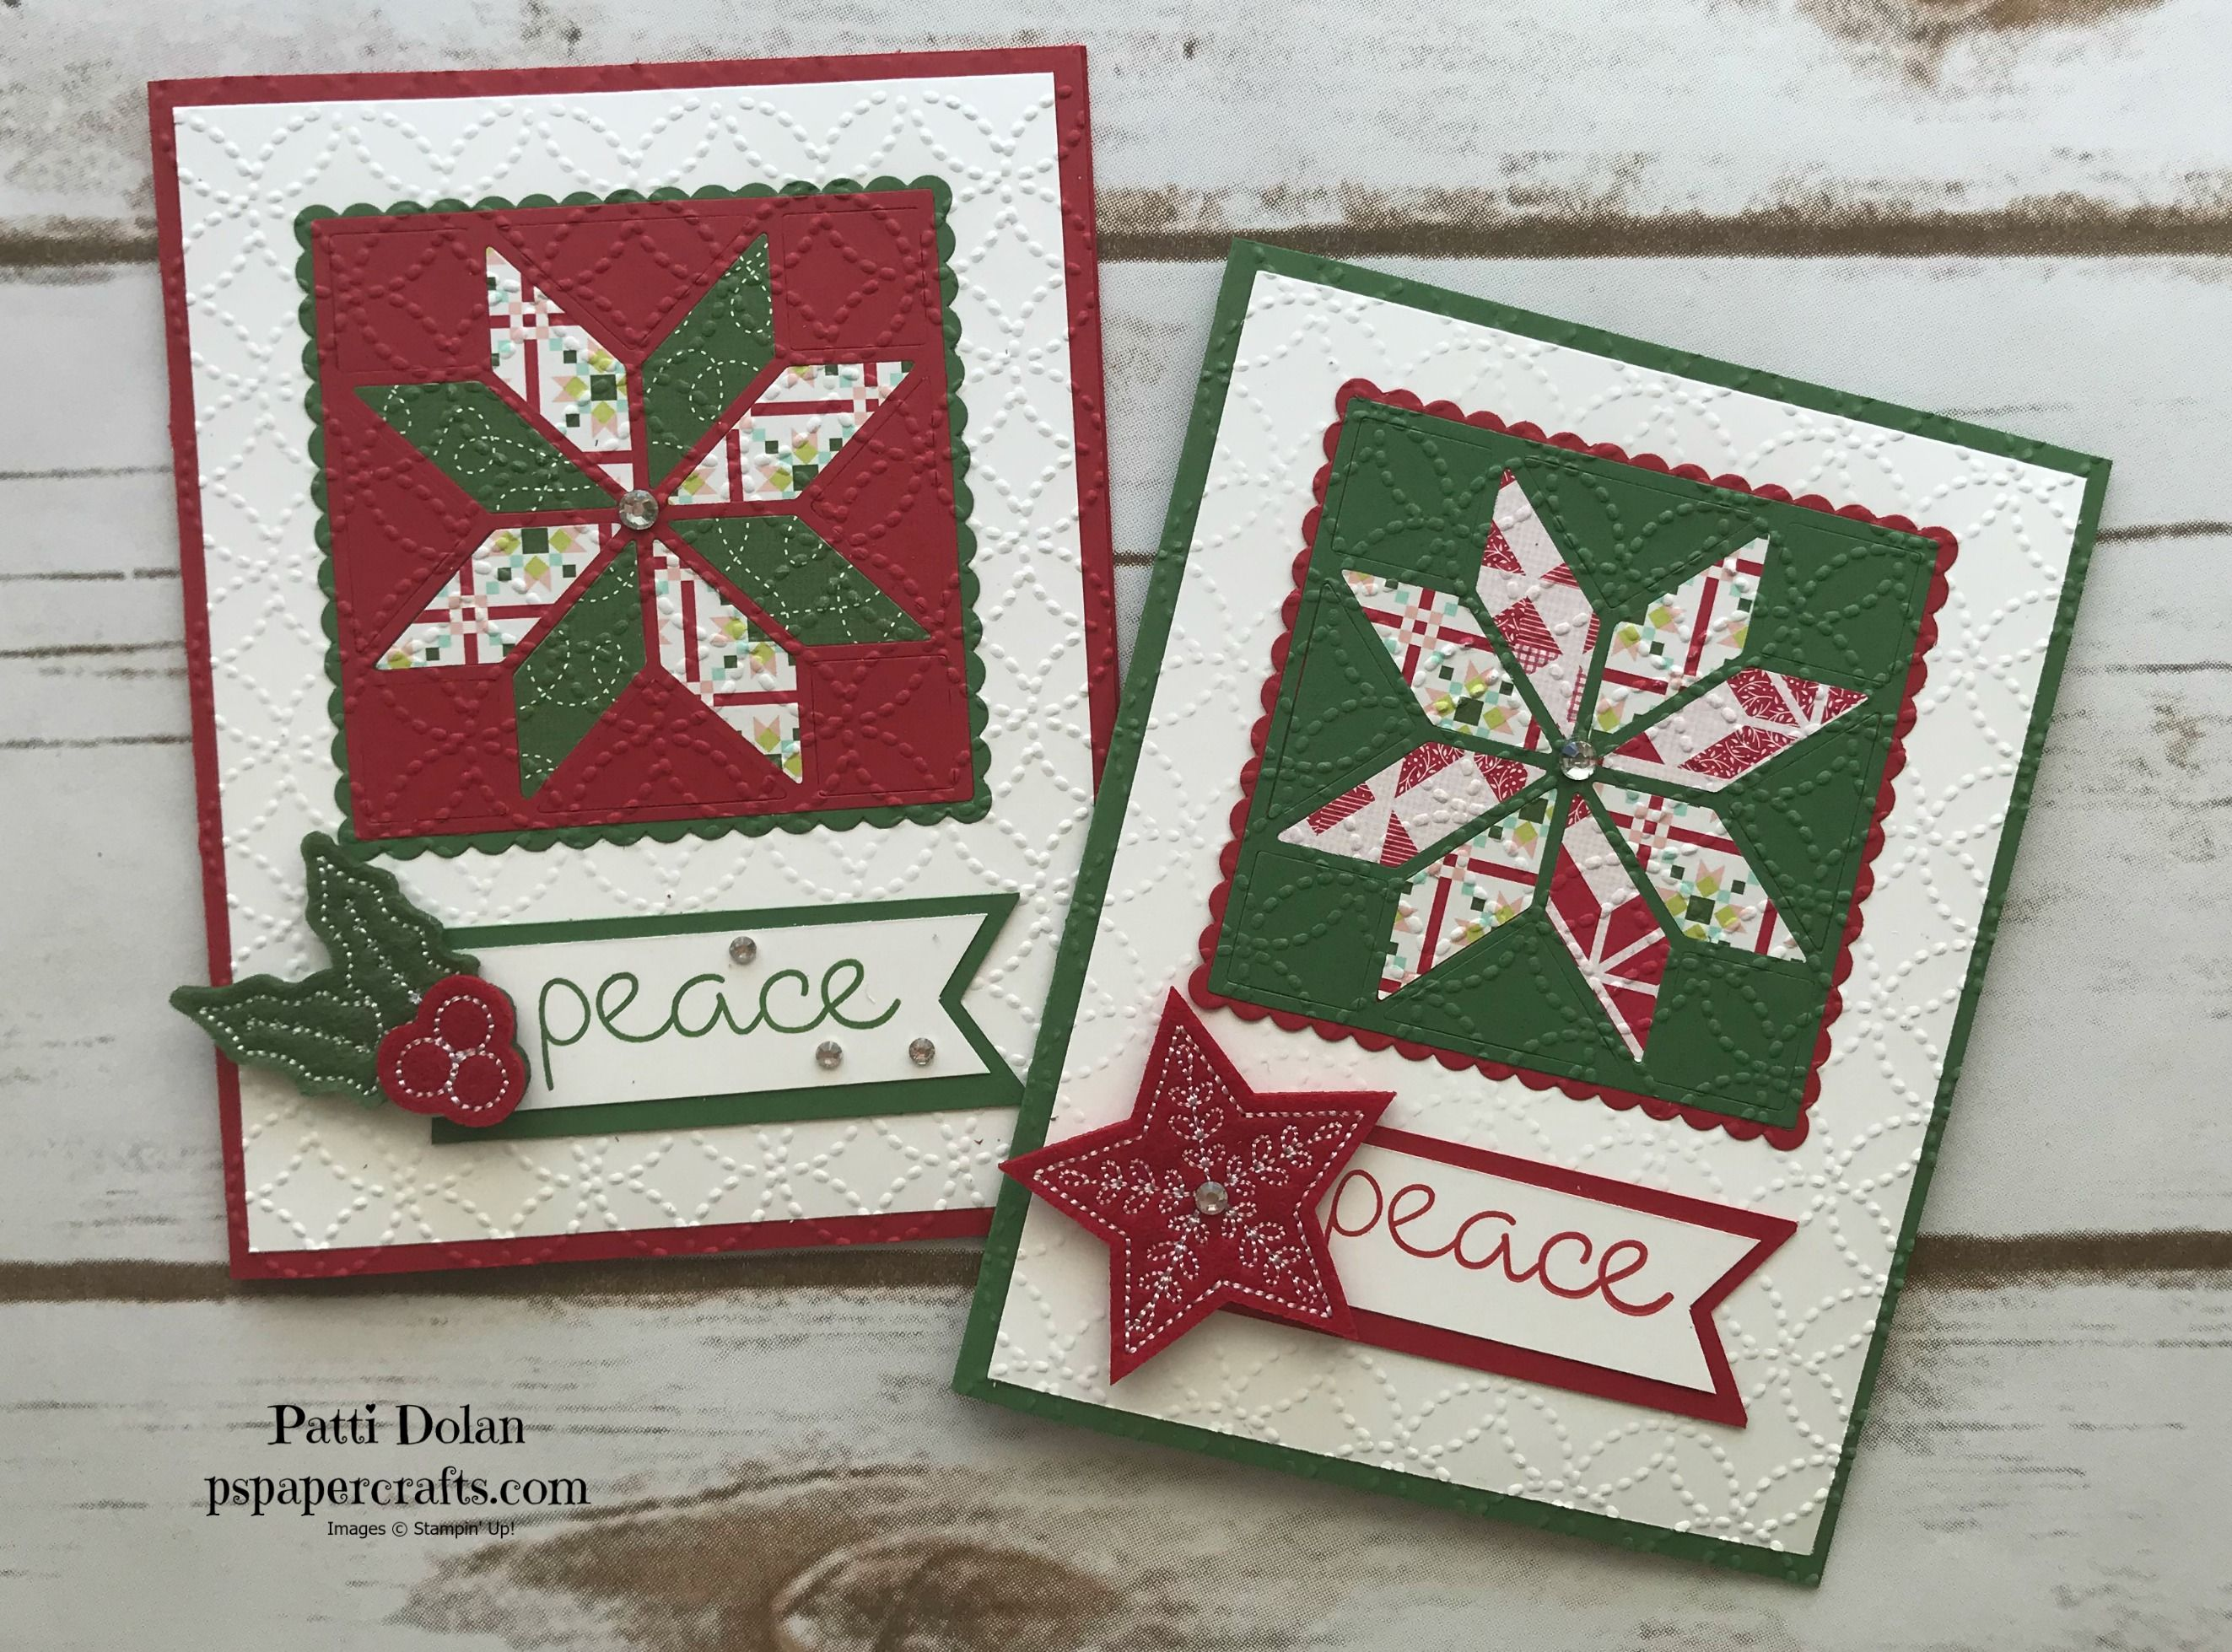 Christmas Quilt Card Week 4 Of 12 Weeks Of Christmas P S Paper Crafts Christmas Cards Handmade Quilted Christmas Gifts Christmas Quilt